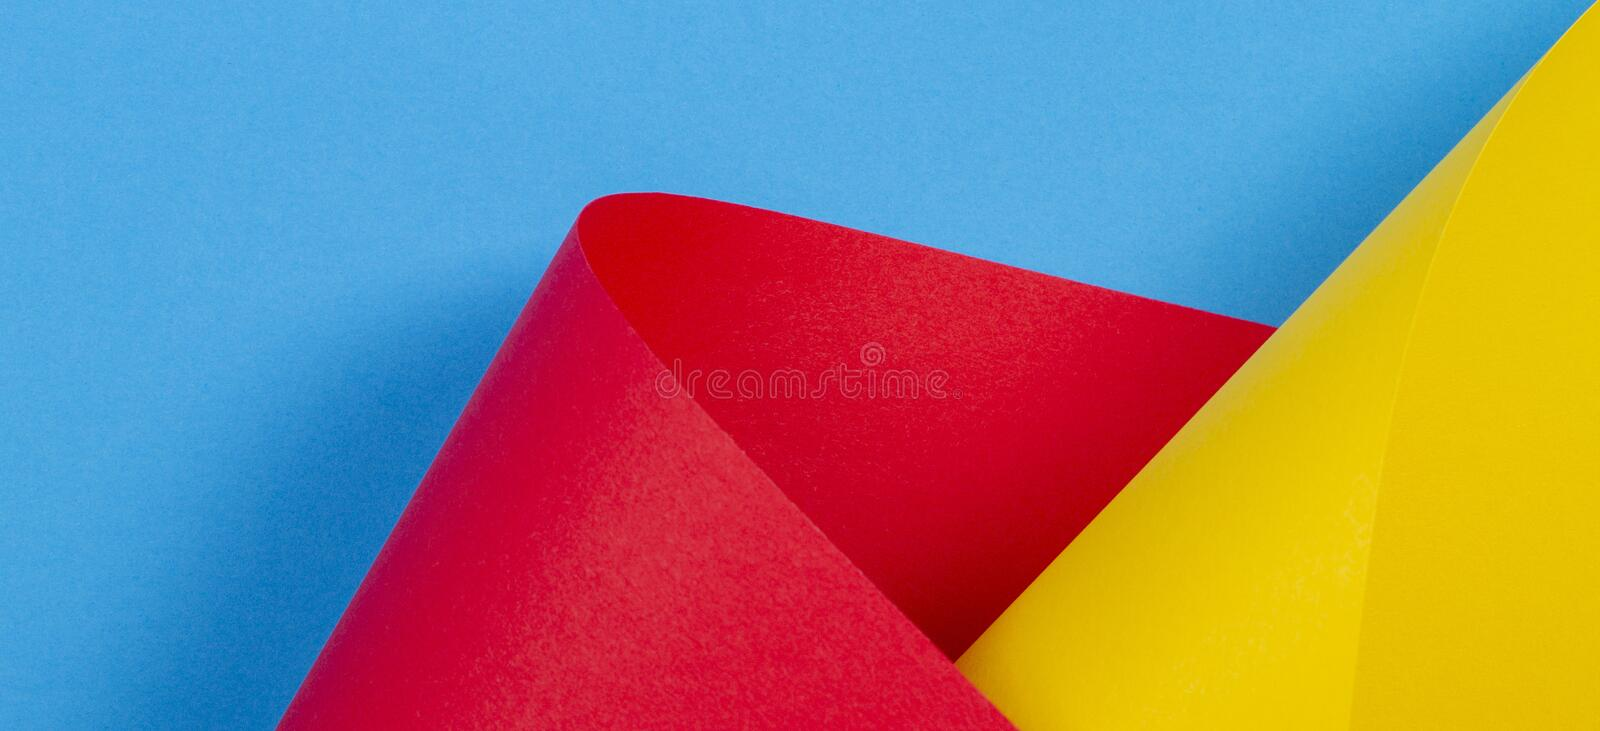 Abstract colorful background. Yellow red blue color paper in geometric shapes. Abstract colorful background. Yellow blue red paper in geometric shapes stock photography